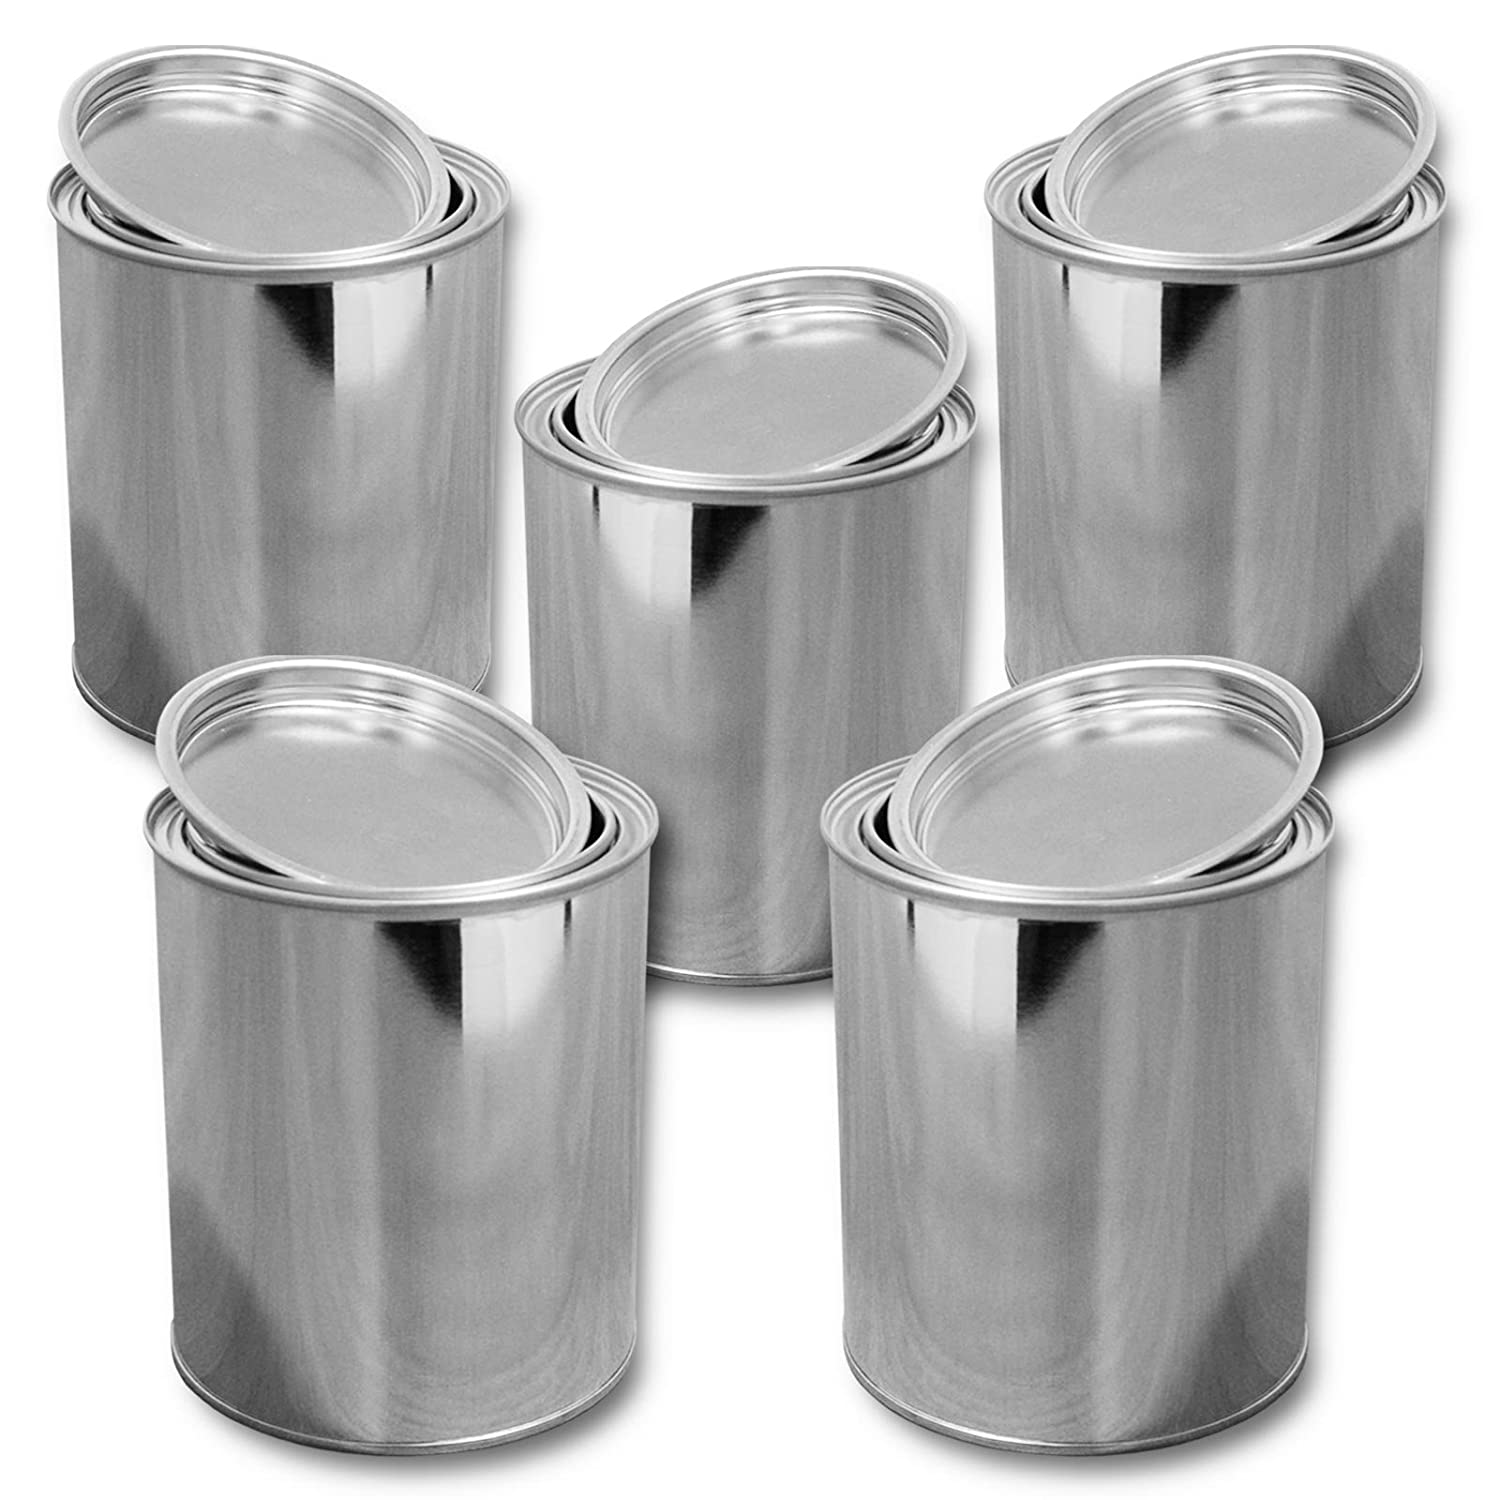 Set di 5 scatole di latta con coperchio 1000 ml (5x23003) Wilai GmbH